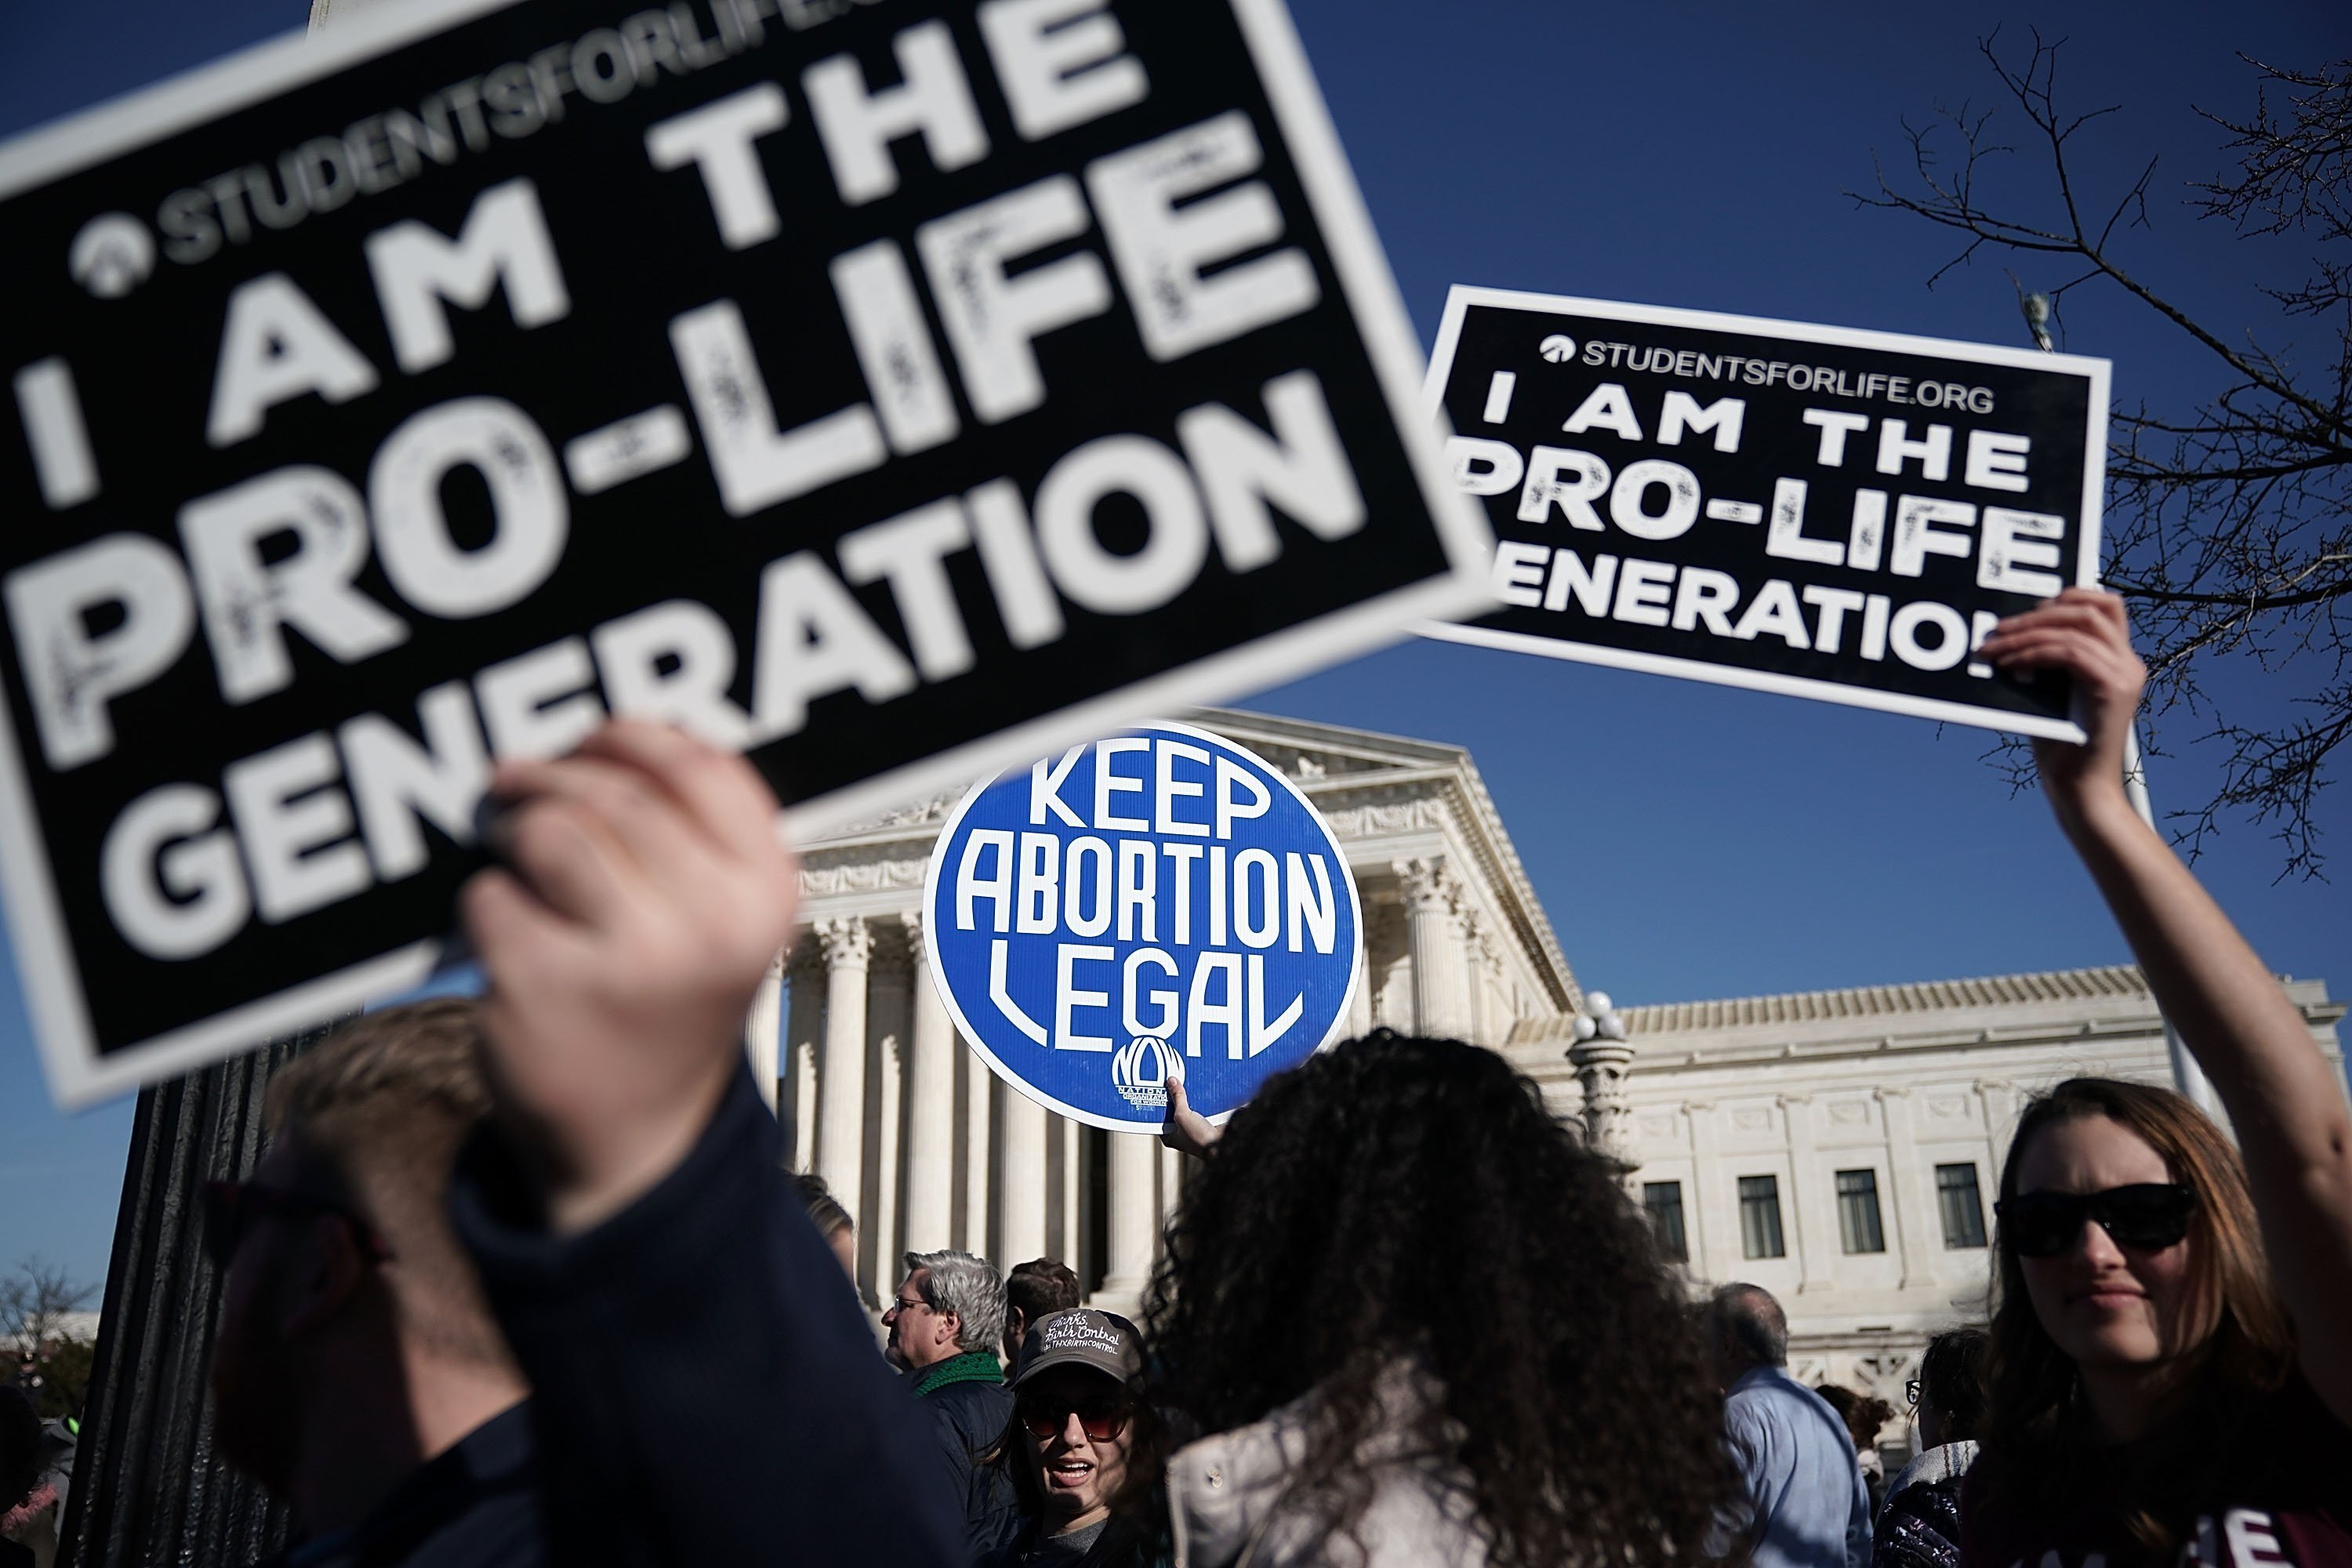 Now that President Donald Trump has the opportunity to appoint a new justice to the Supreme Court, some abortion opponents hope that Roe v. Wade will end up overturned or gutted -- and they have already been working towards that moment.